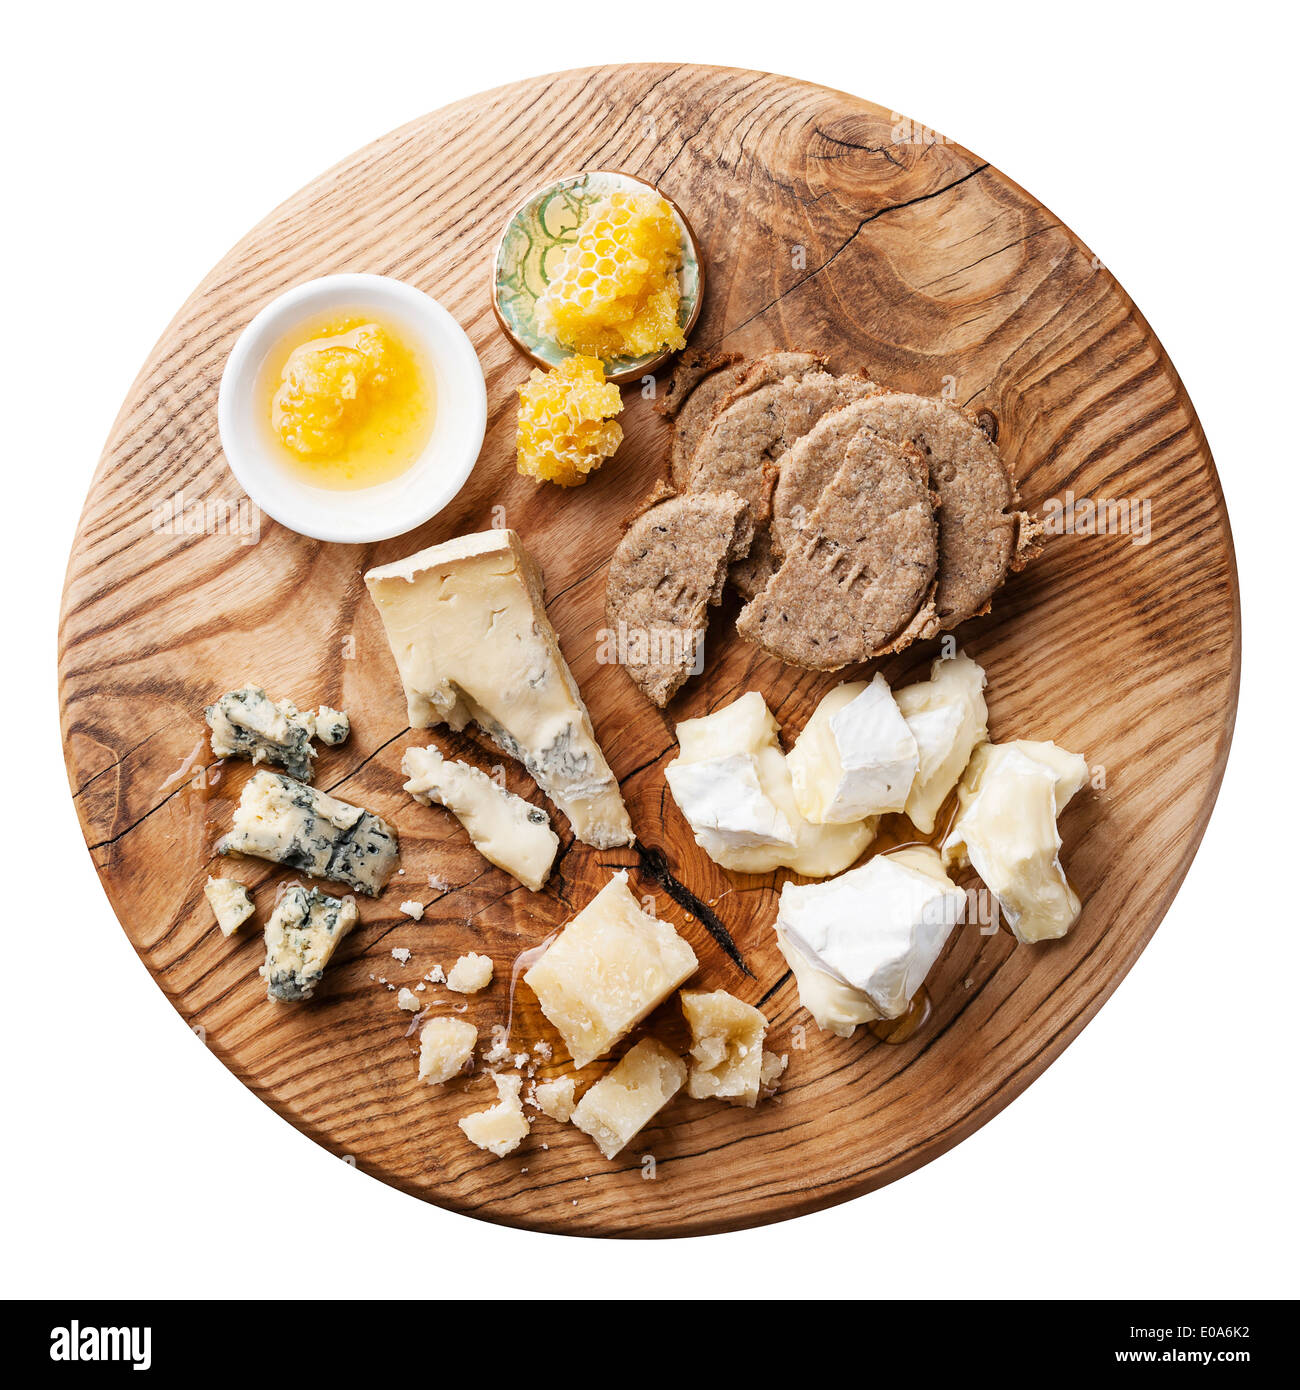 Cheese appetizer with honey and crackers - Stock Image